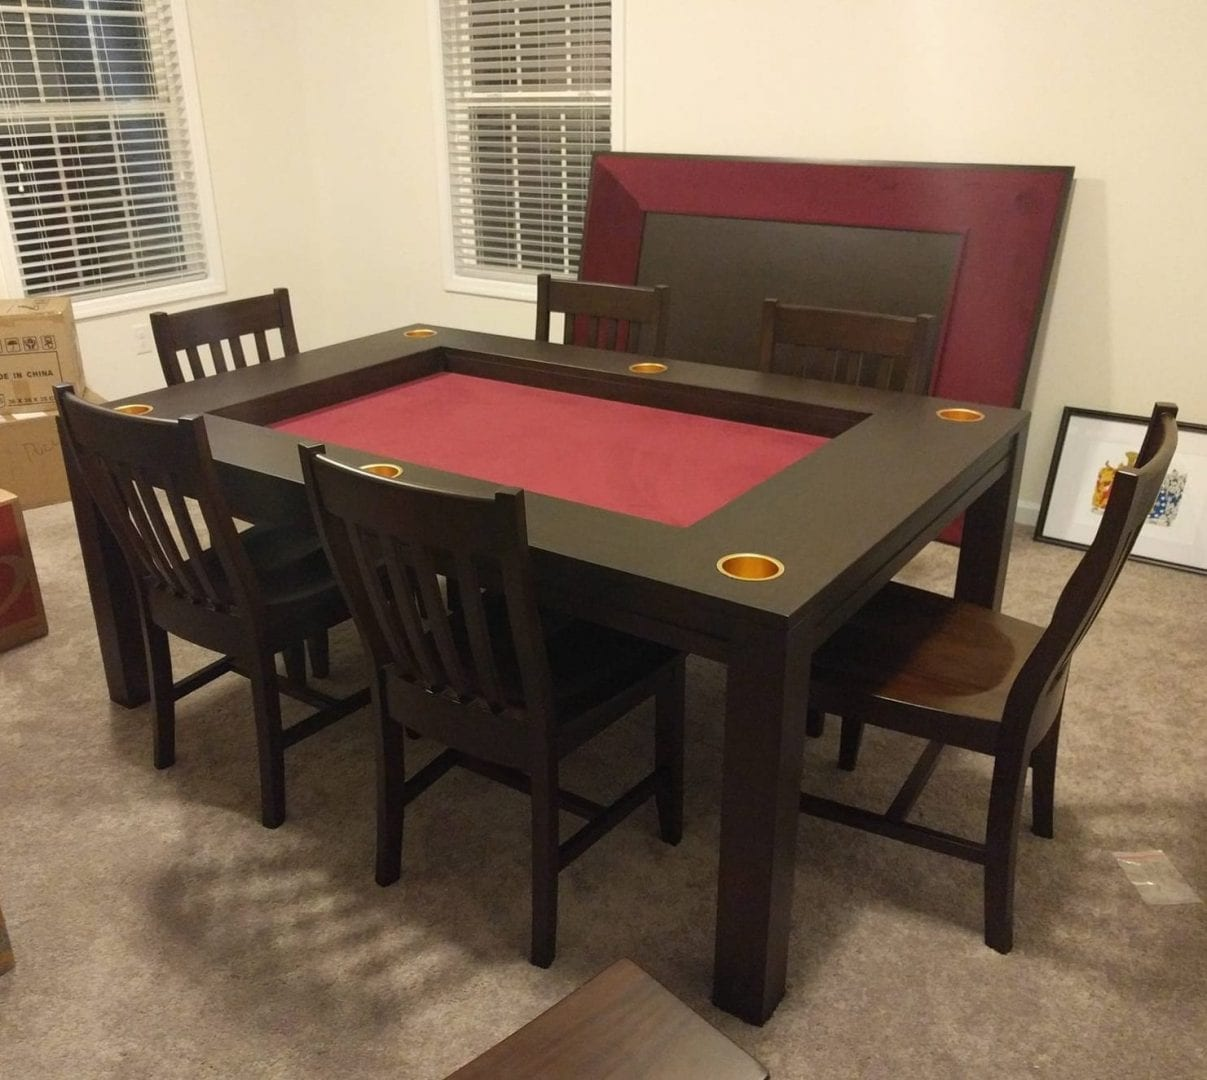 Dining game table one table for everyday dining and game for 10 games in 1 table